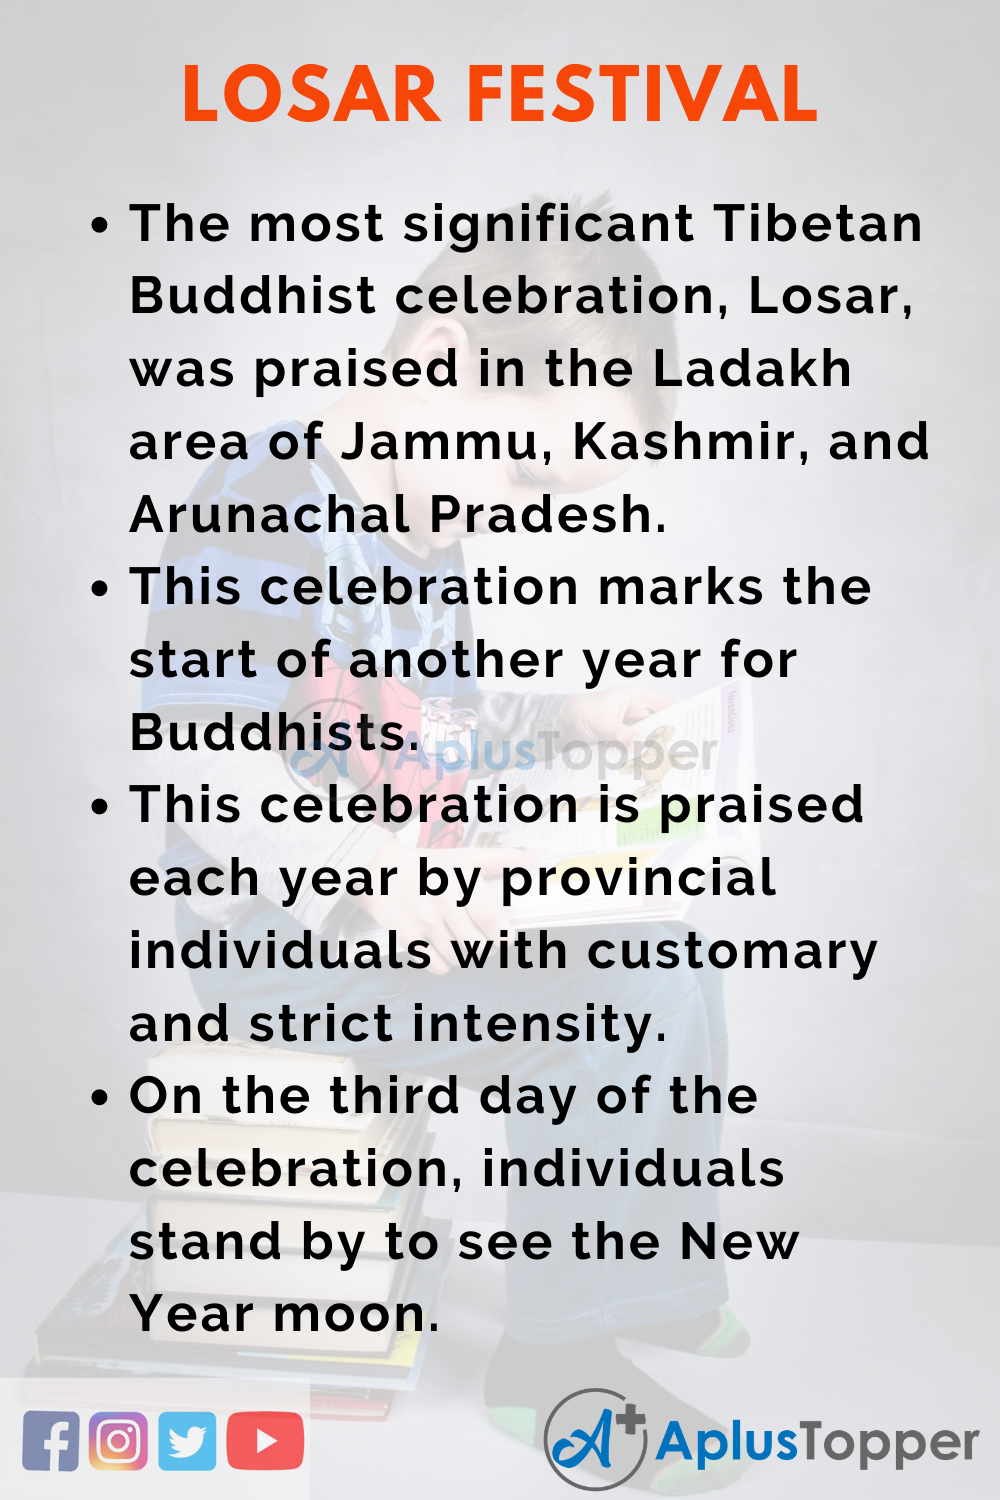 10 Lines On Losar Festival for Higher Class Students